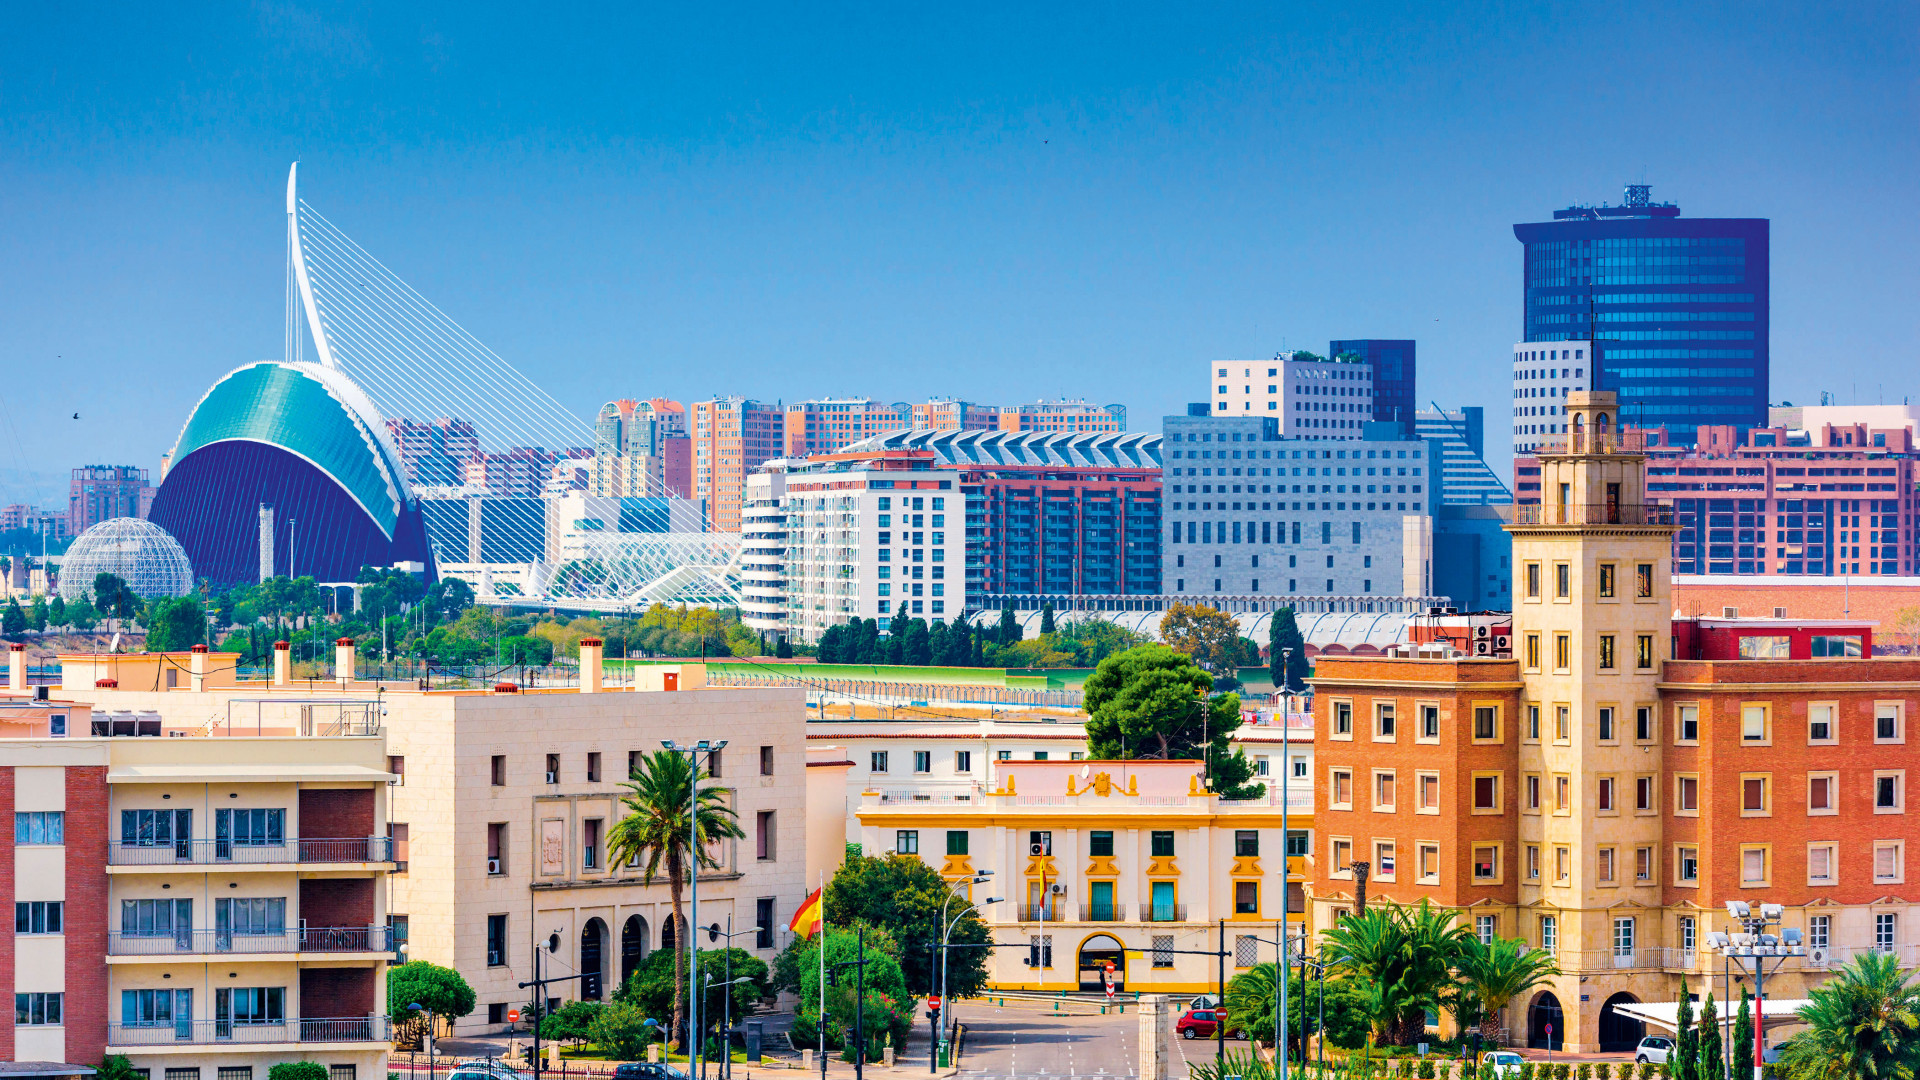 Blue sky and cityscapes in Valencia, Spain